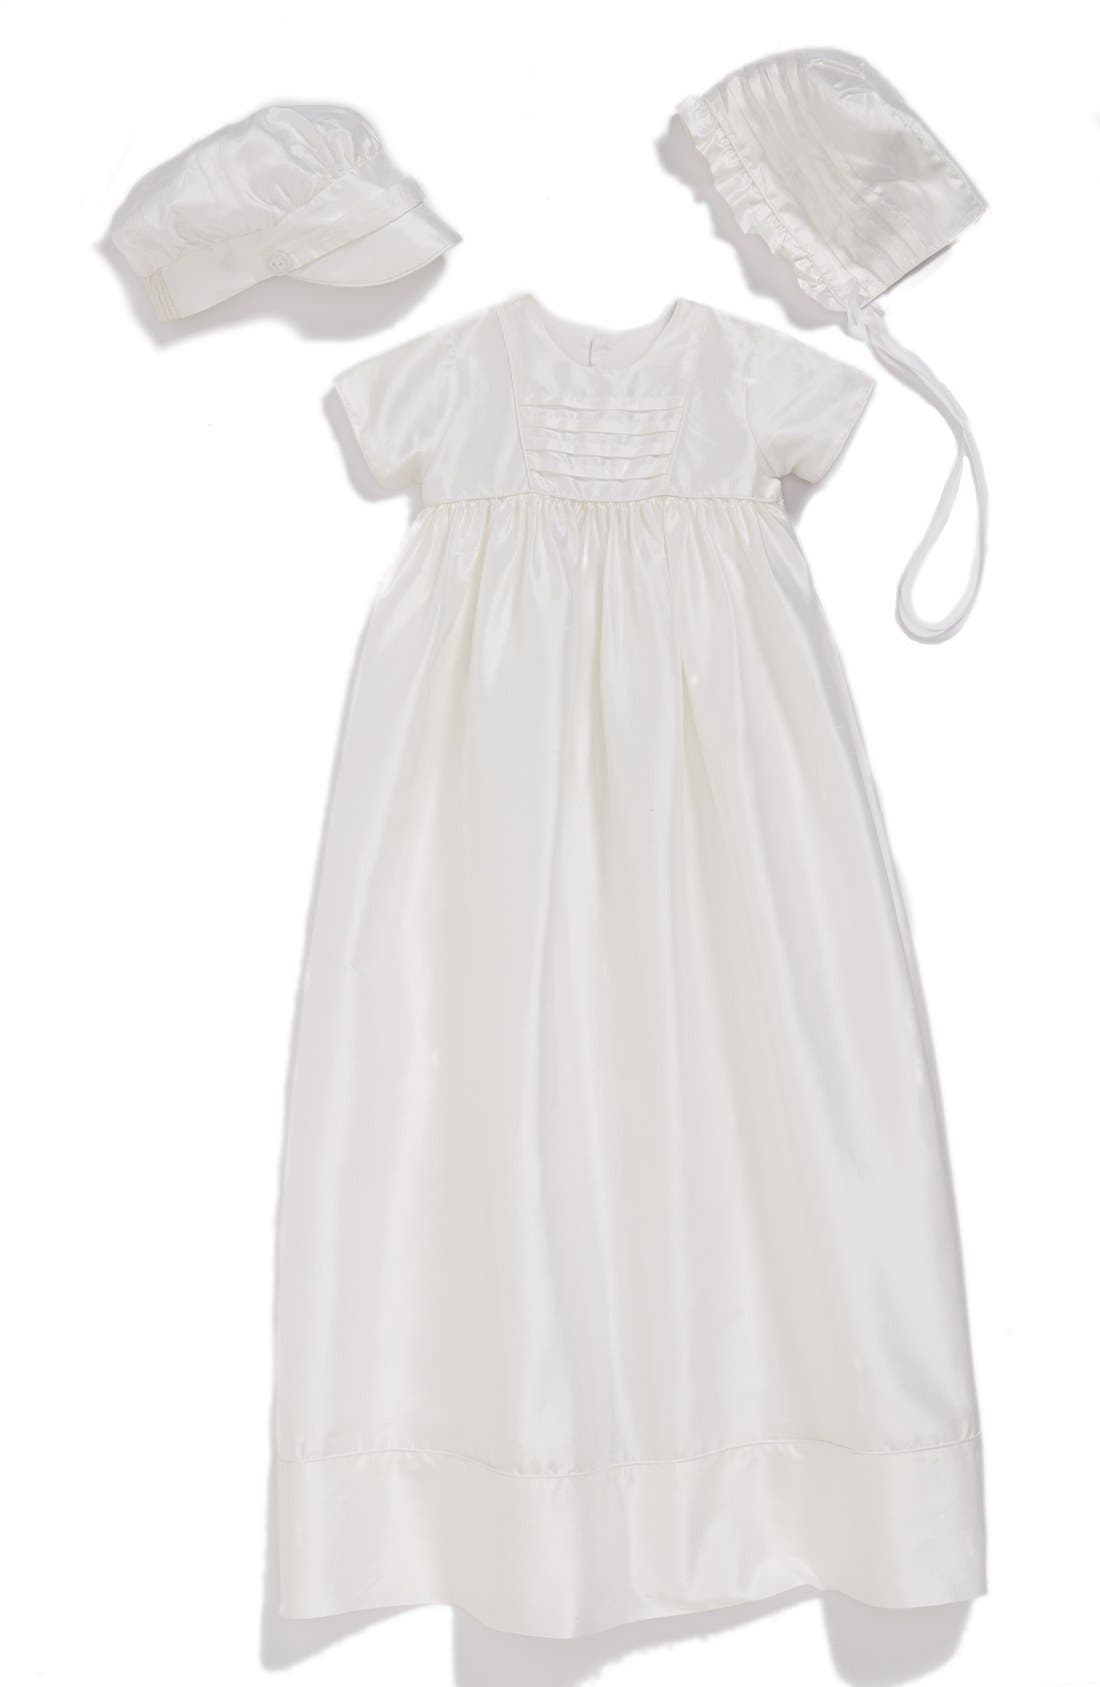 Dupioni Christening Gown with Hat and Bonnet Set,                         Main,                         color, WHITE